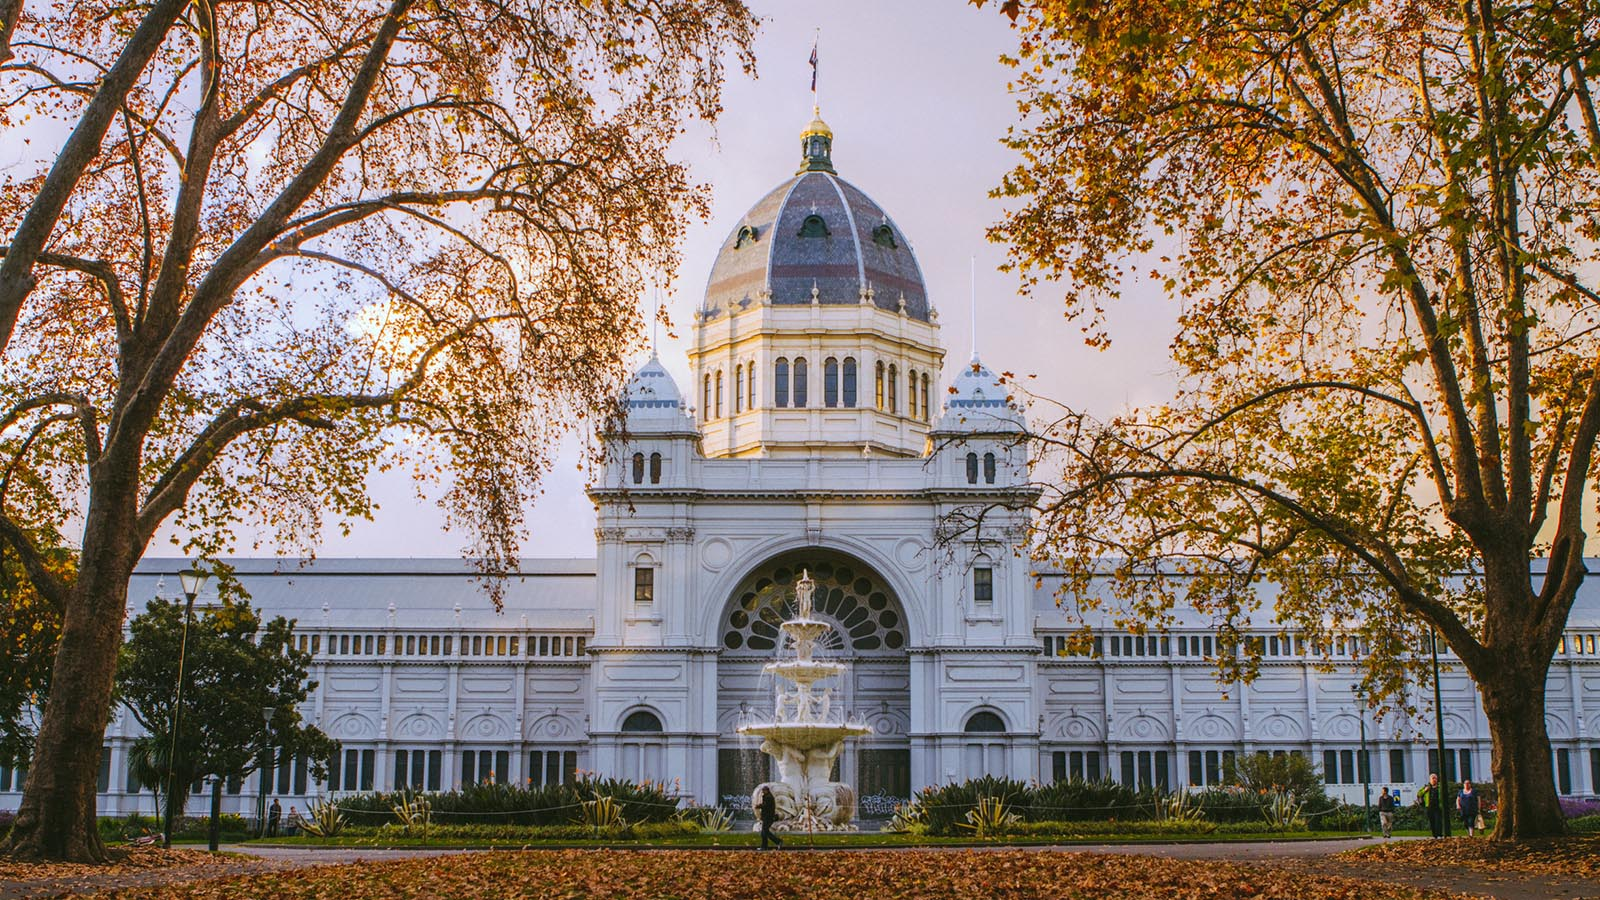 Royal Exhibition Building in autumn, Melbourne, Victoria, Australia